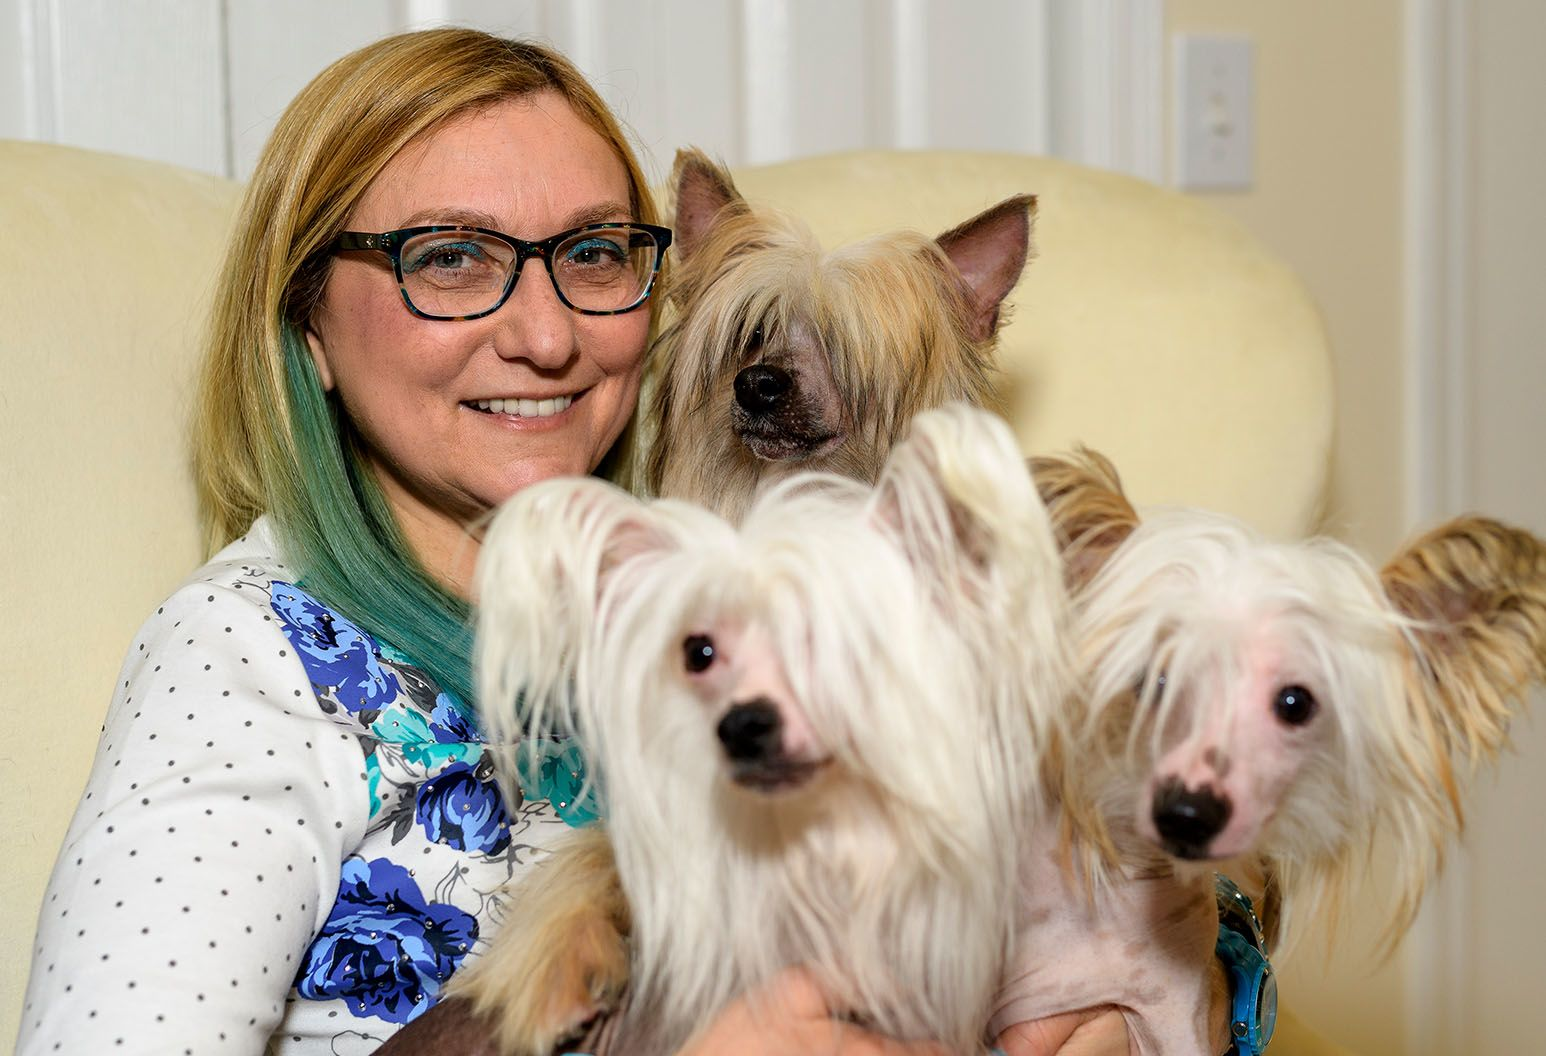 Woman sitting on a couch holding three small dogs.